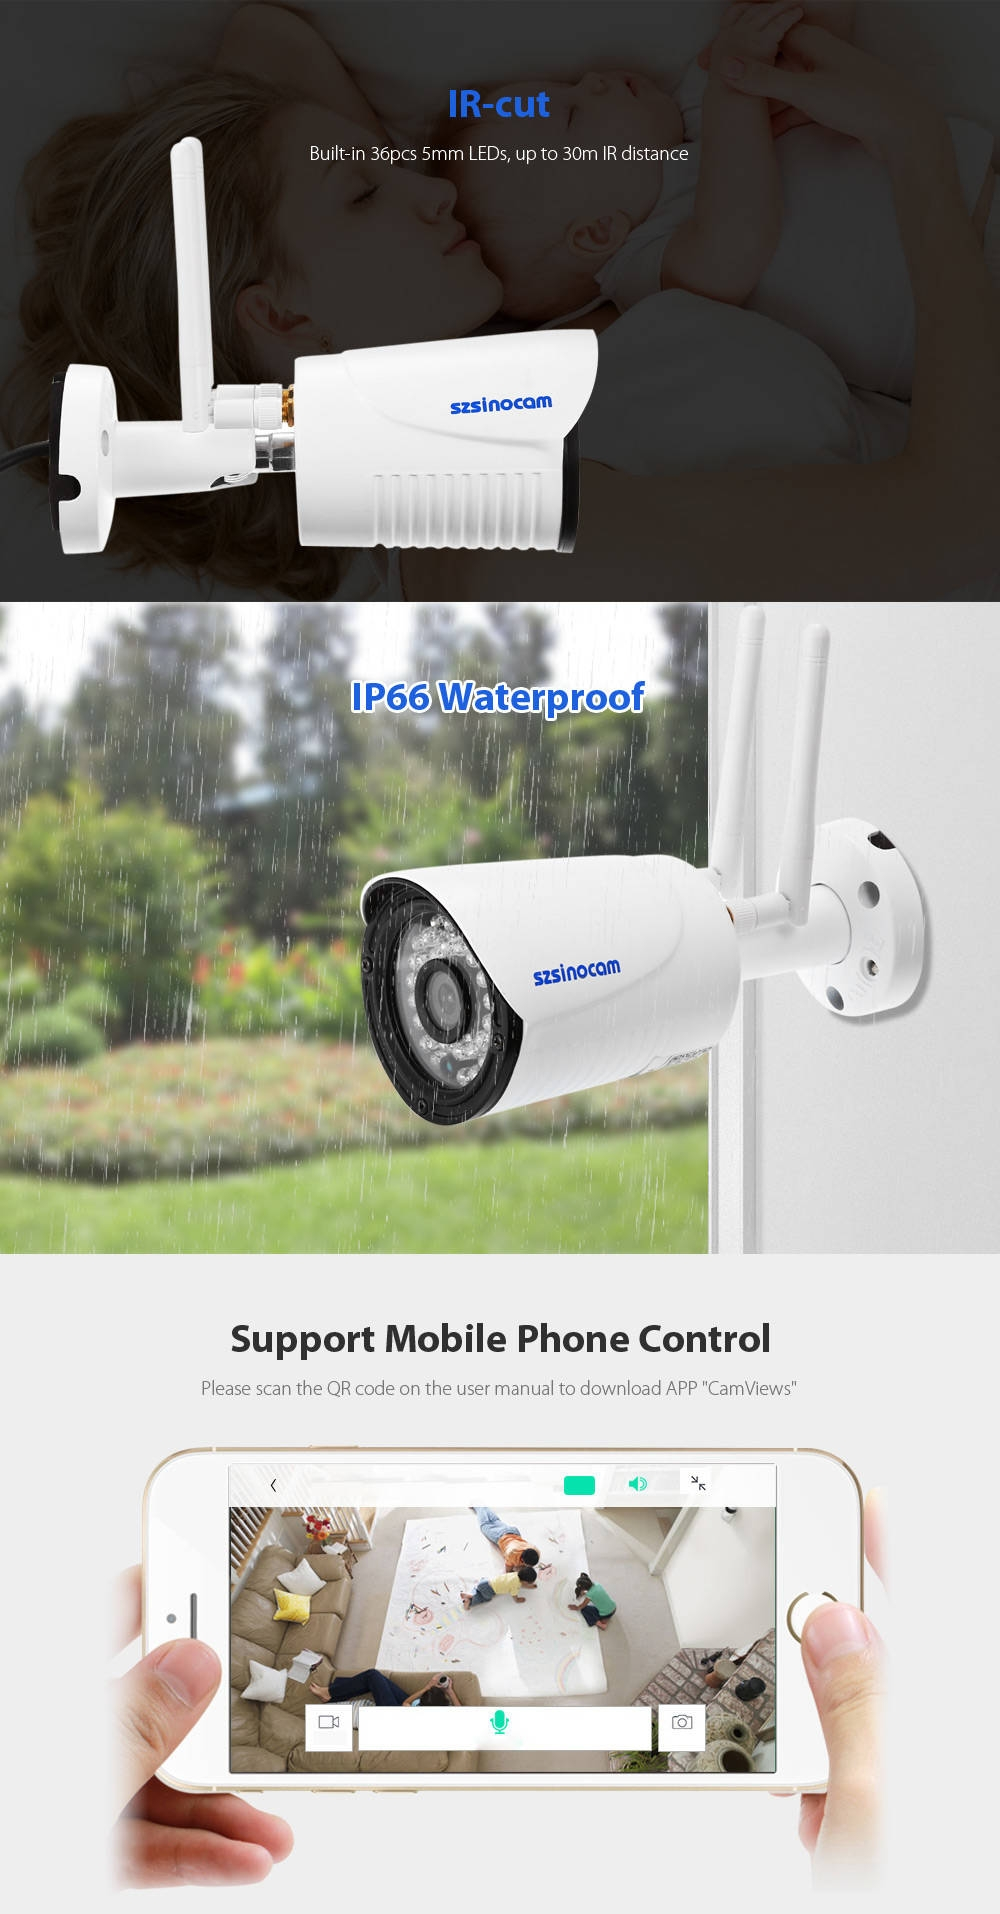 Szsinocam SZ - IPC - 7029CSW 2.0MP WiFi IP Camera Security System 1080P Motion Detection Waterproof